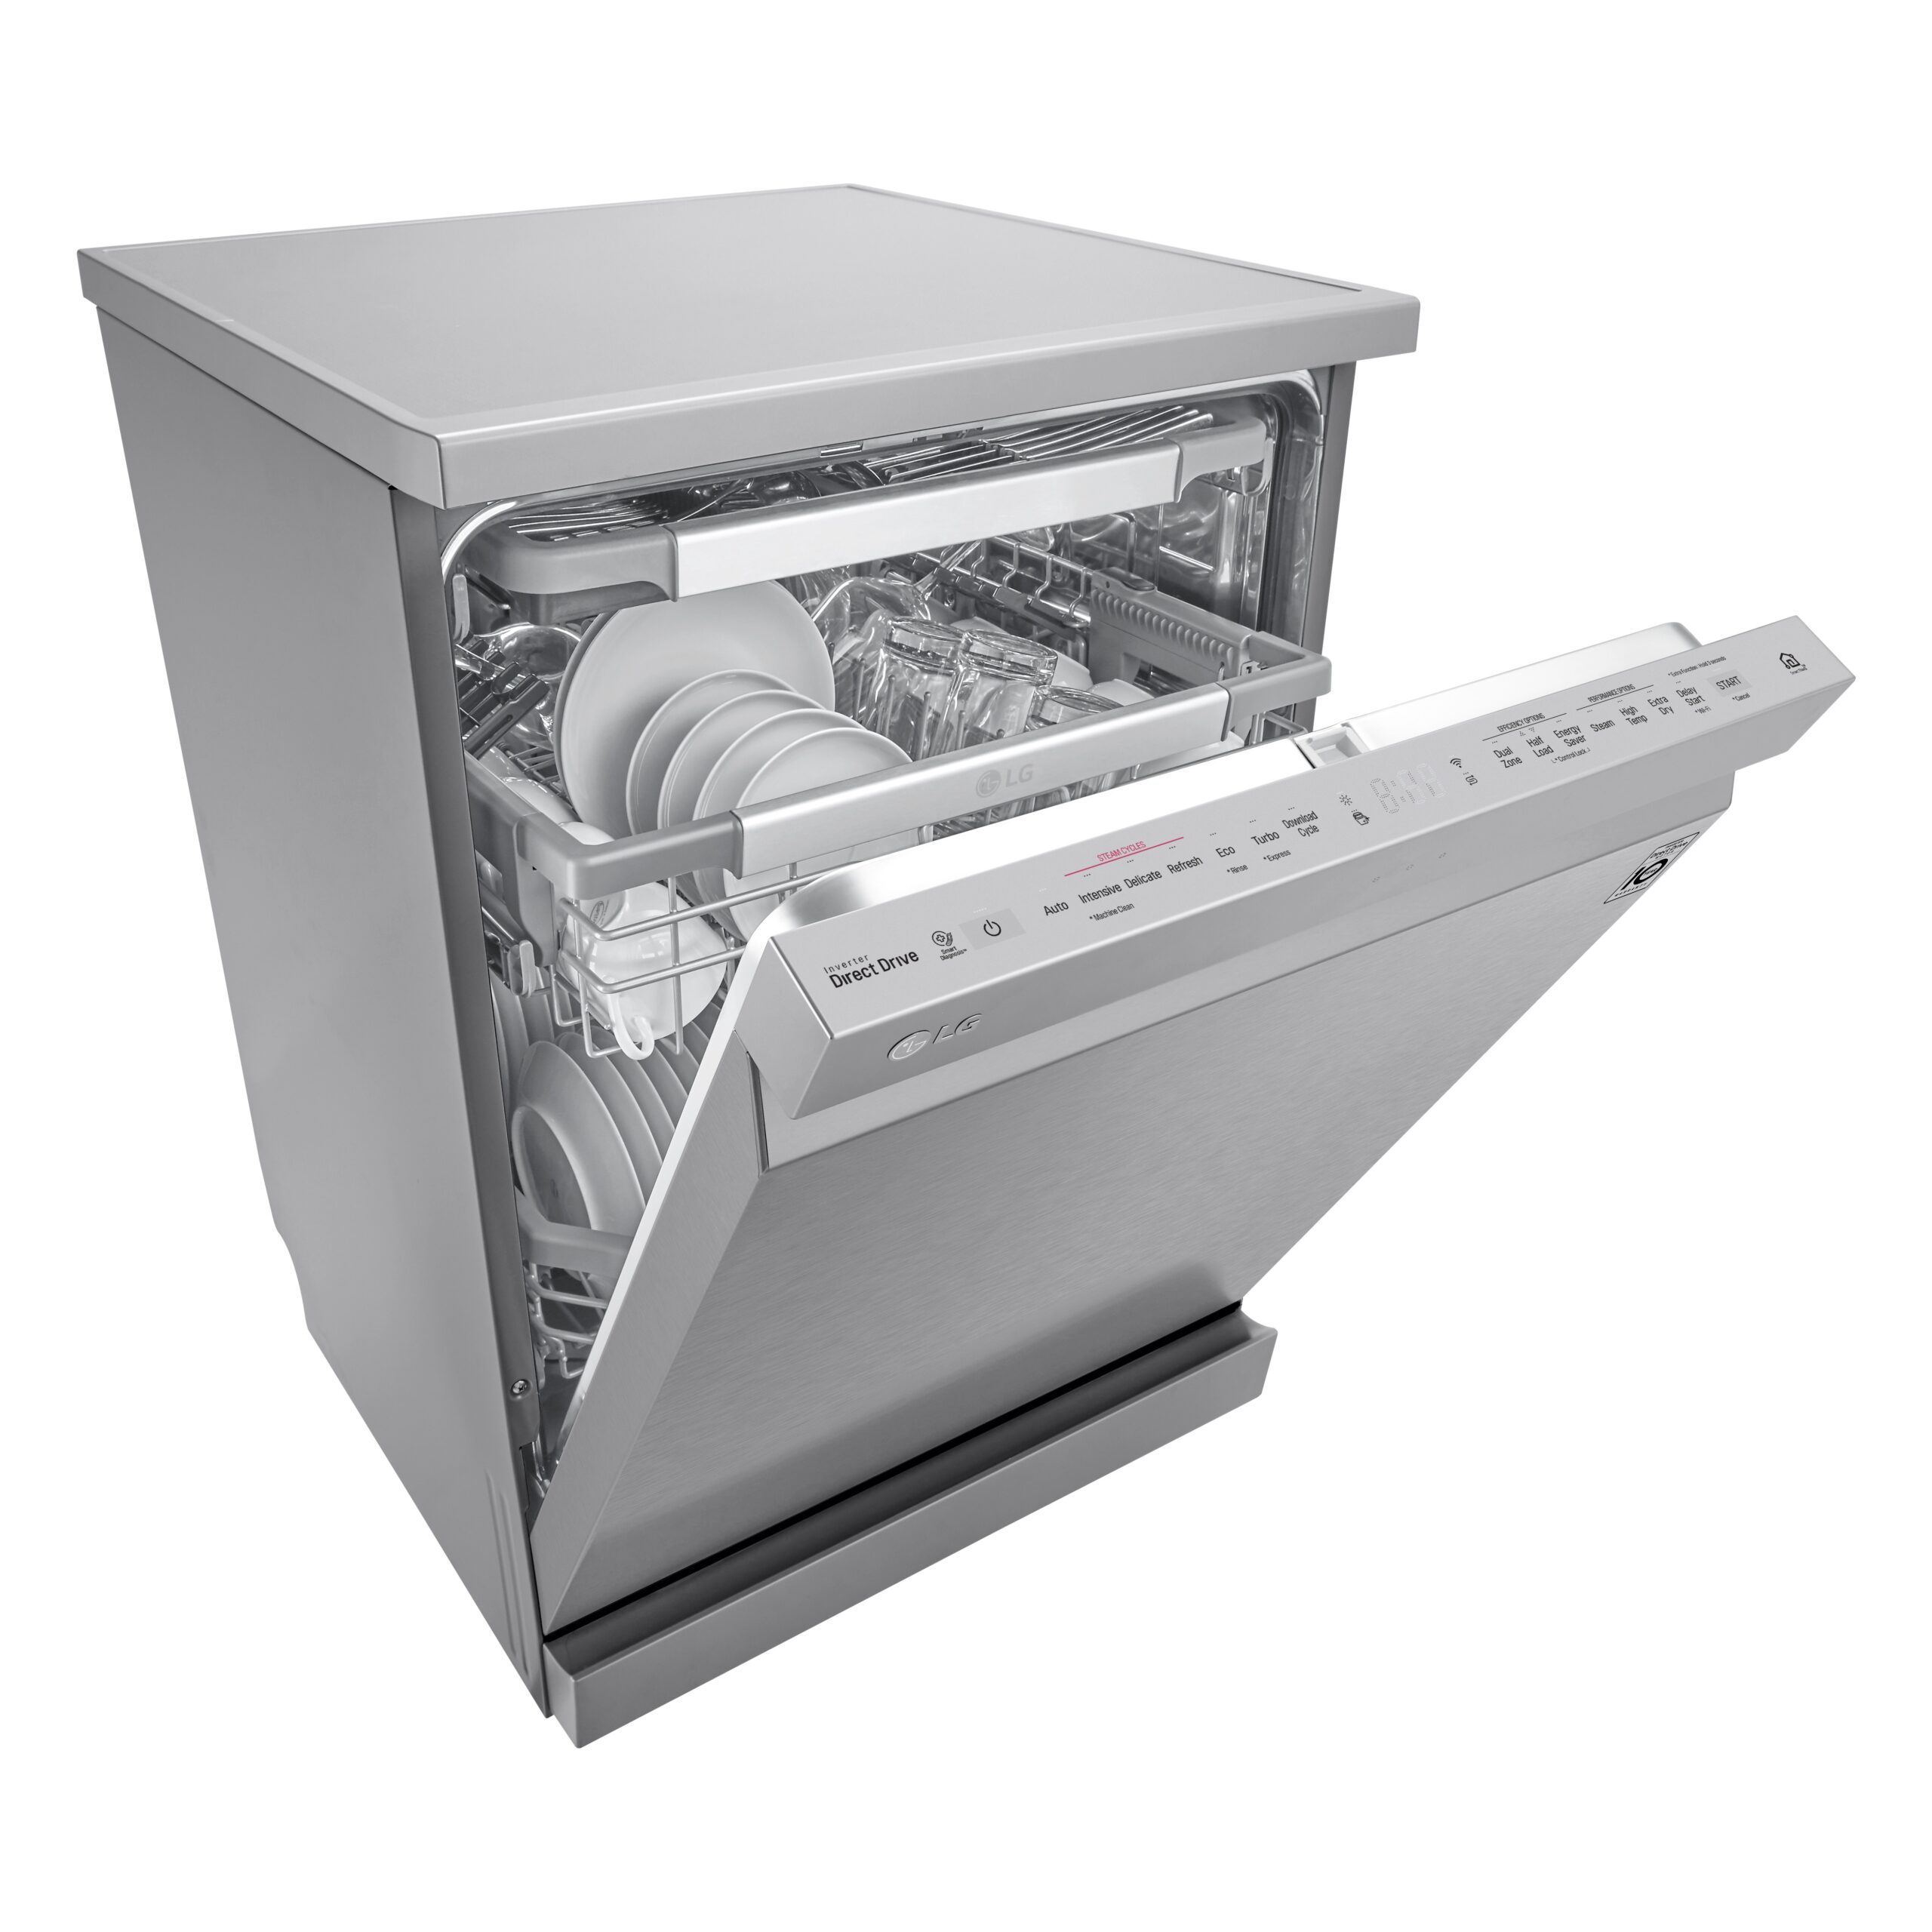 LG SteamClean™ dishwasher with the door slightly open and filled with various clean dishes